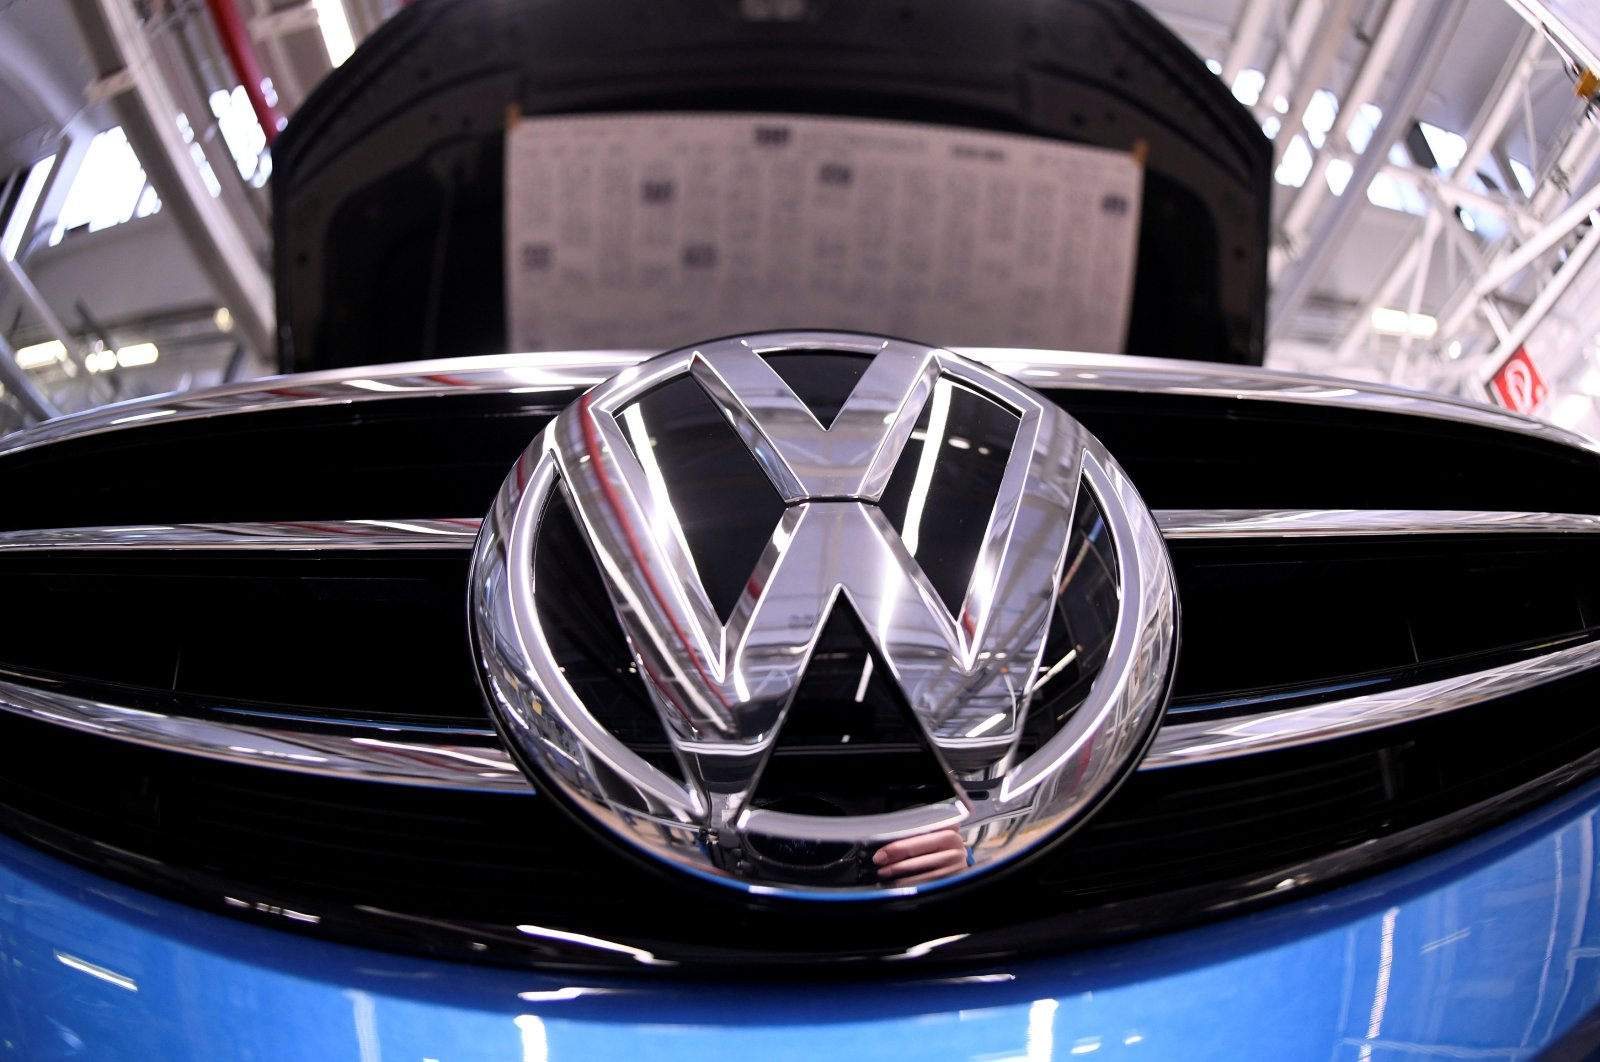 A Volkswagen logo is pictured in a production line at the Volkswagen plant in Wolfsburg, Germany, March 1, 2019. (Reuters Photo)